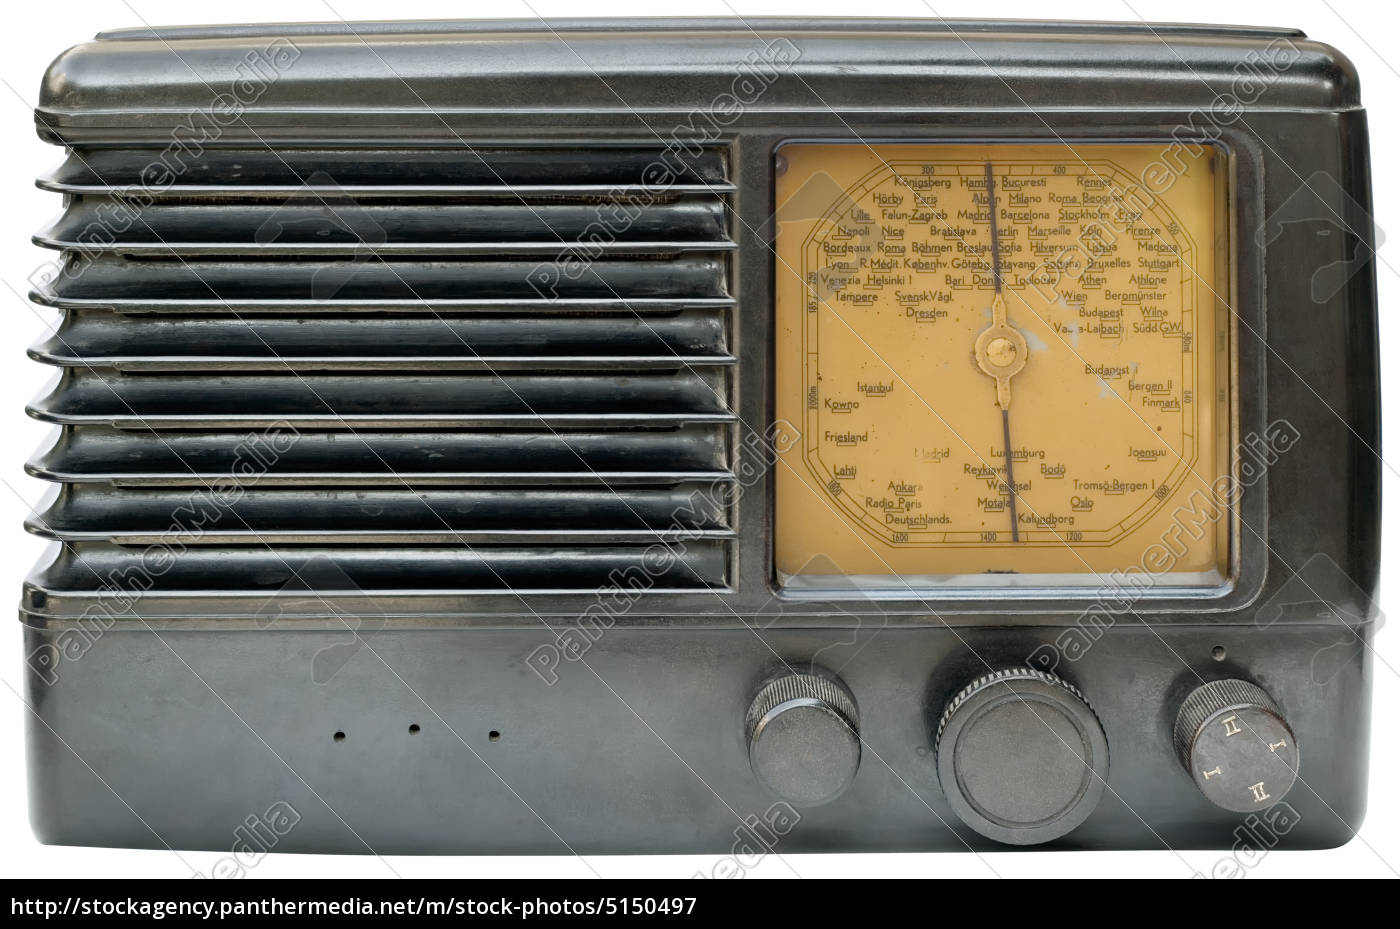 Image result for Old Radio